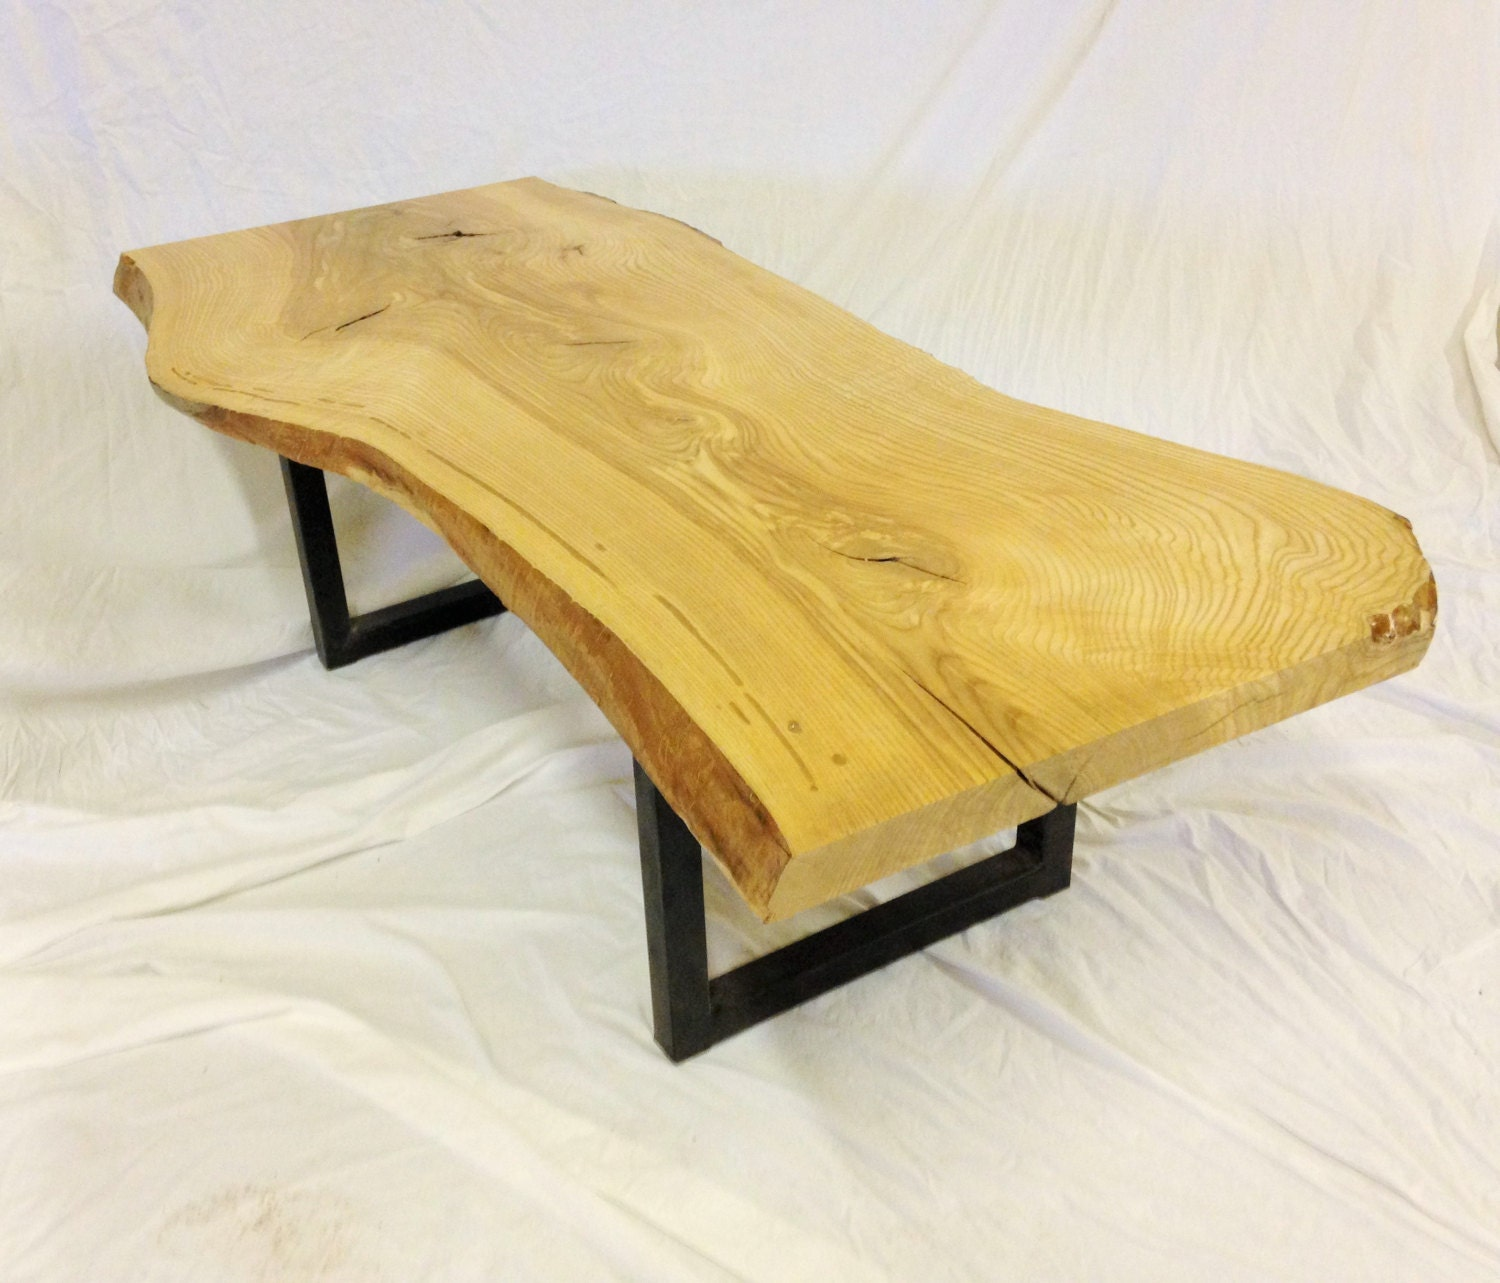 Live Edge Coffee Tables Live Edge Table Wood Slab Table